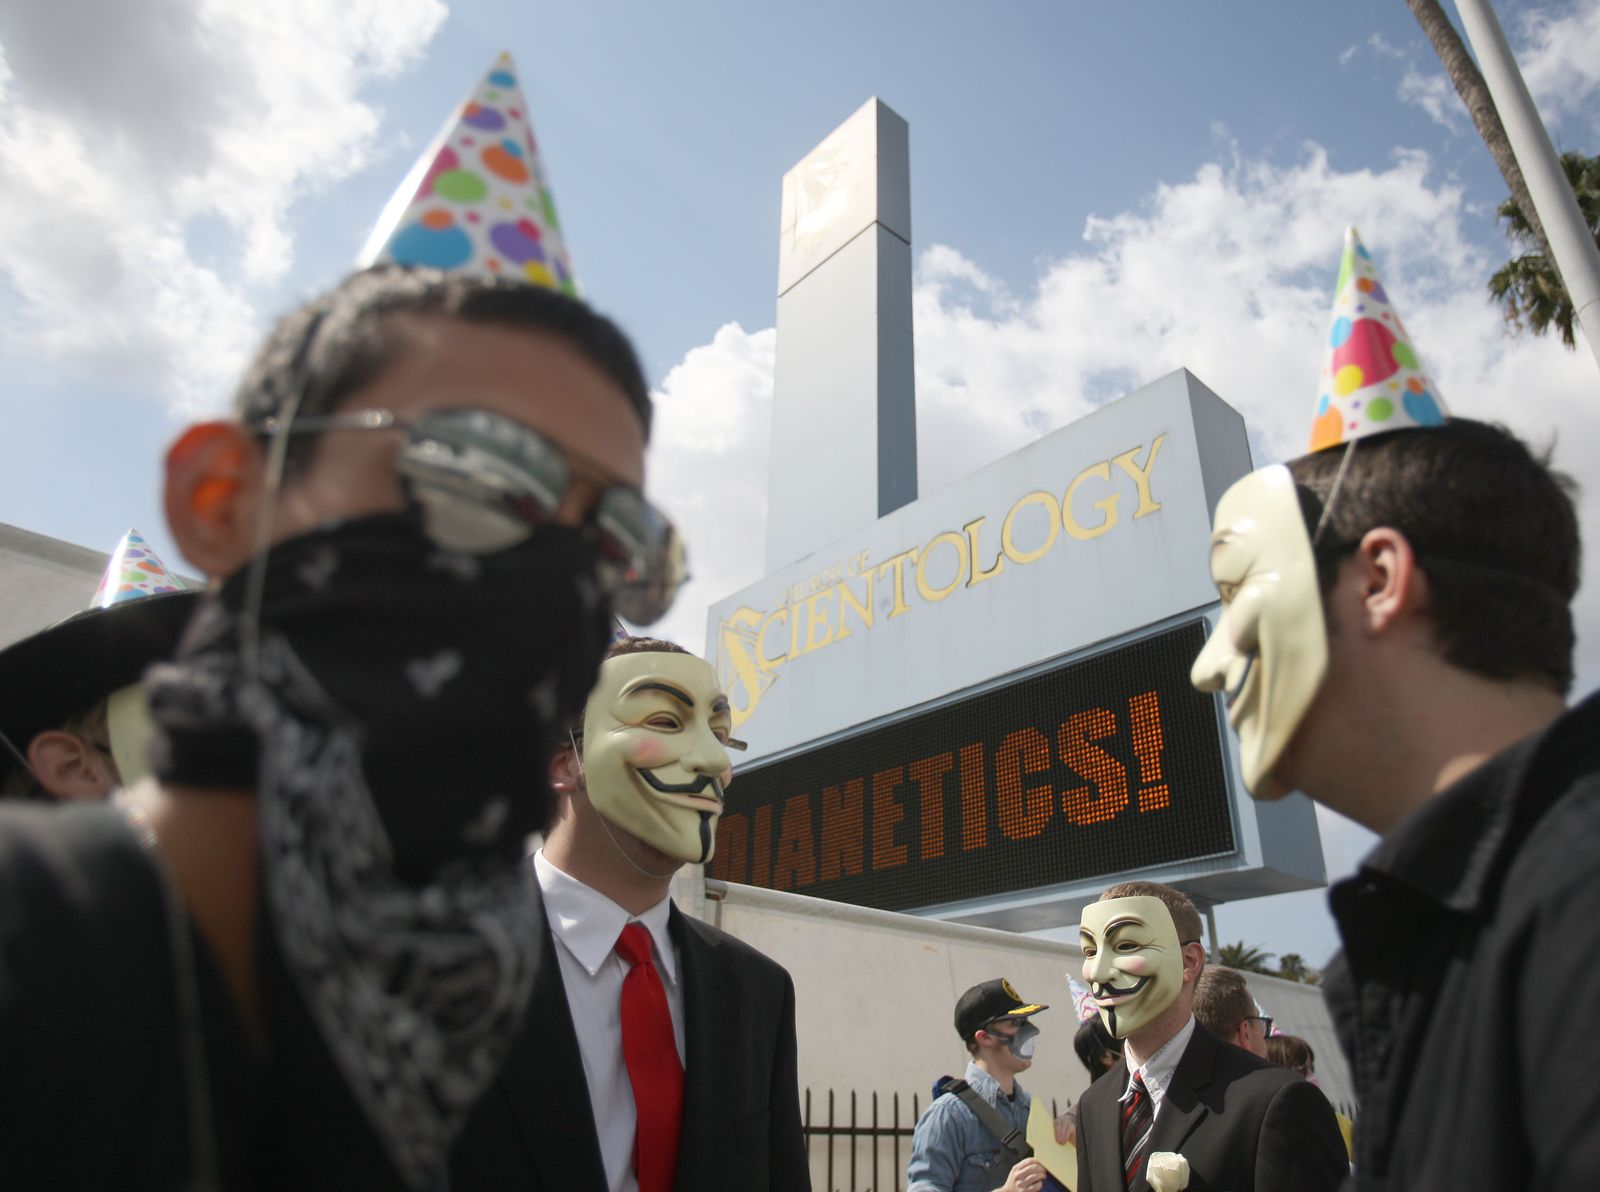 Scientology Protest / Anonymous